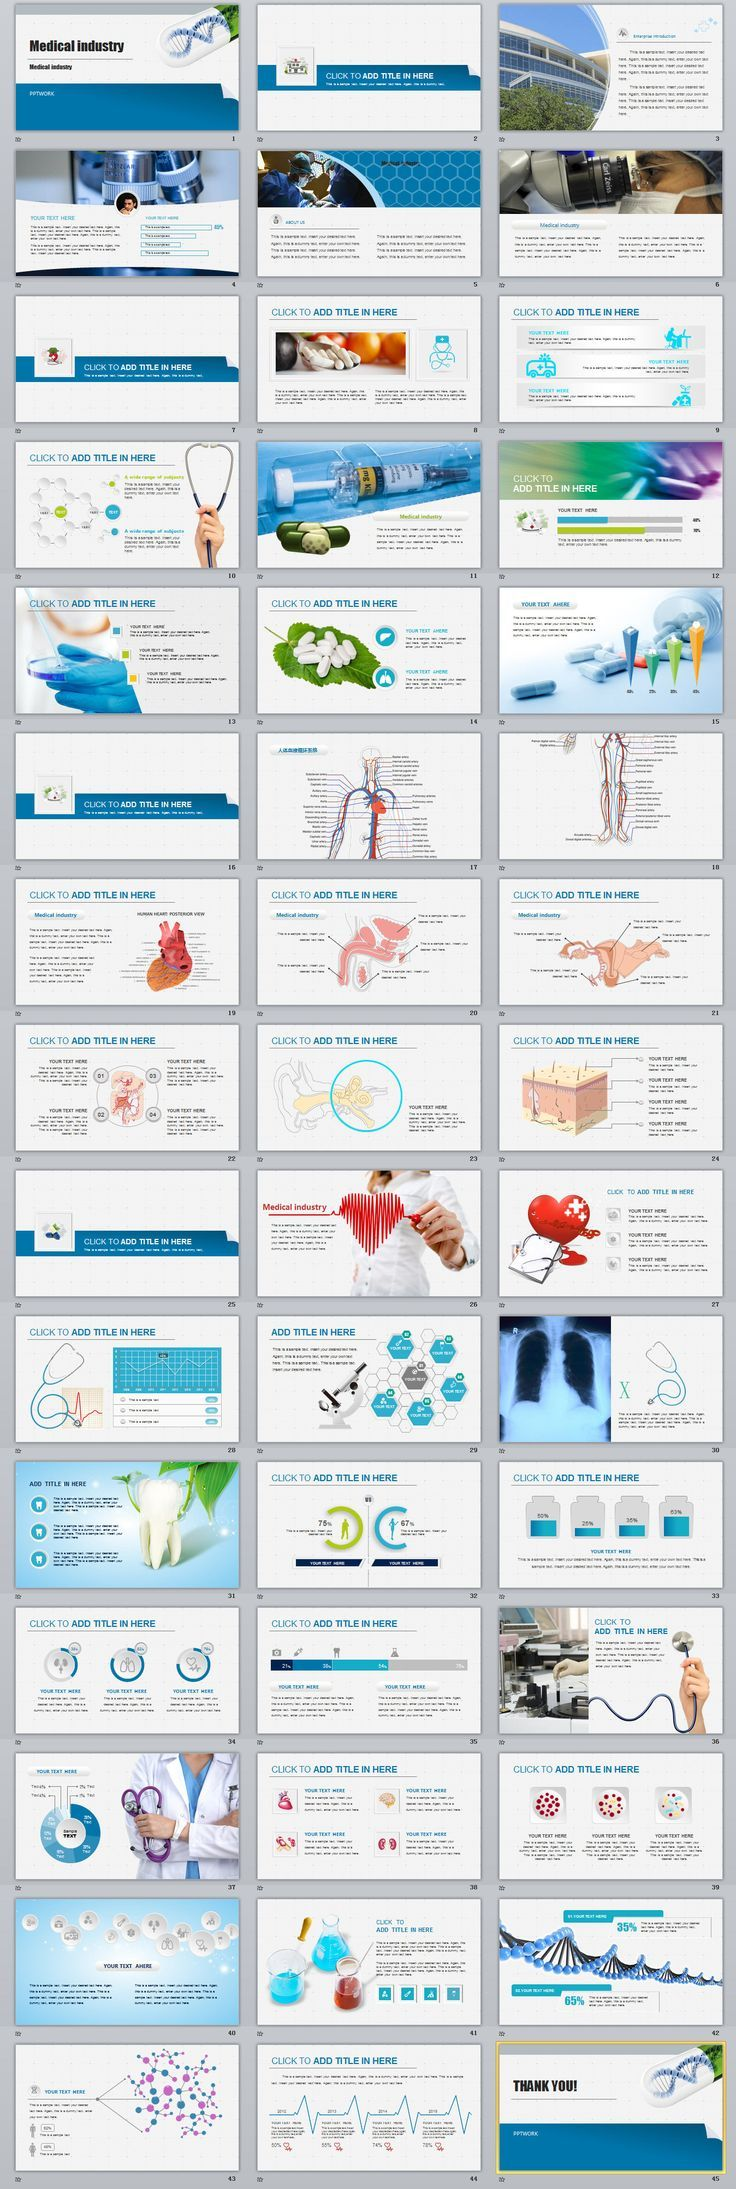 Business infographic 45 best medical industry powerpoint business infographic 45 best medical industry powerpoint templates on behance powerpoint templates toneelgroepblik